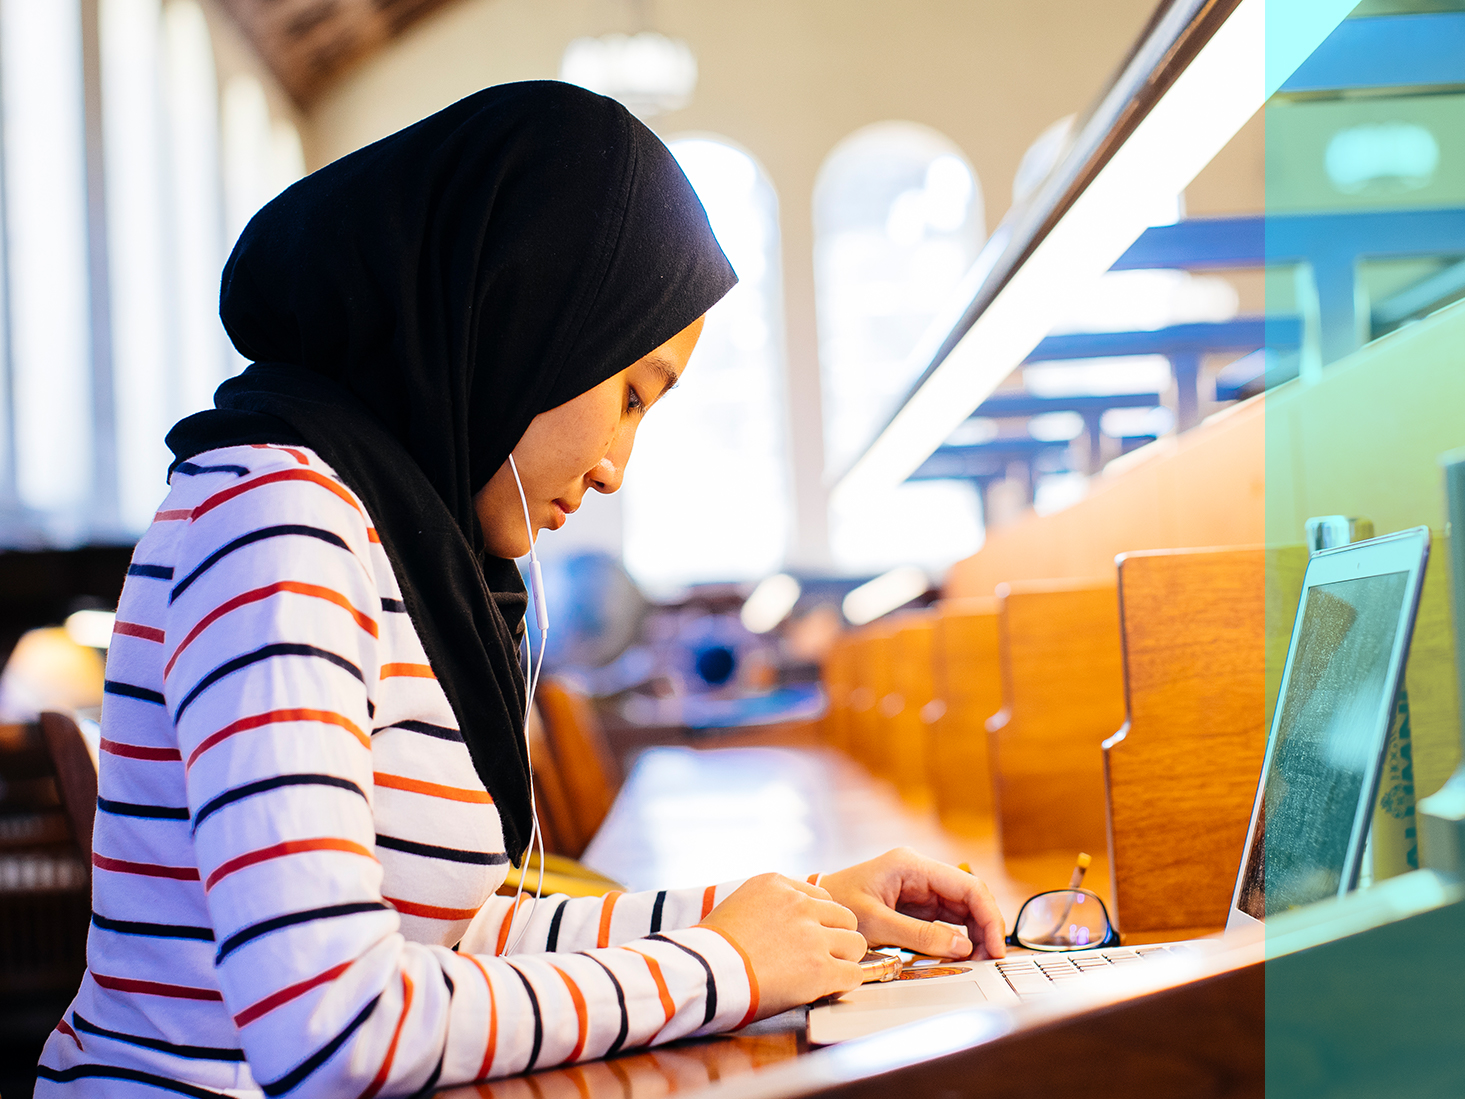 A woman wearing a headscarf does research on a computer in the library.